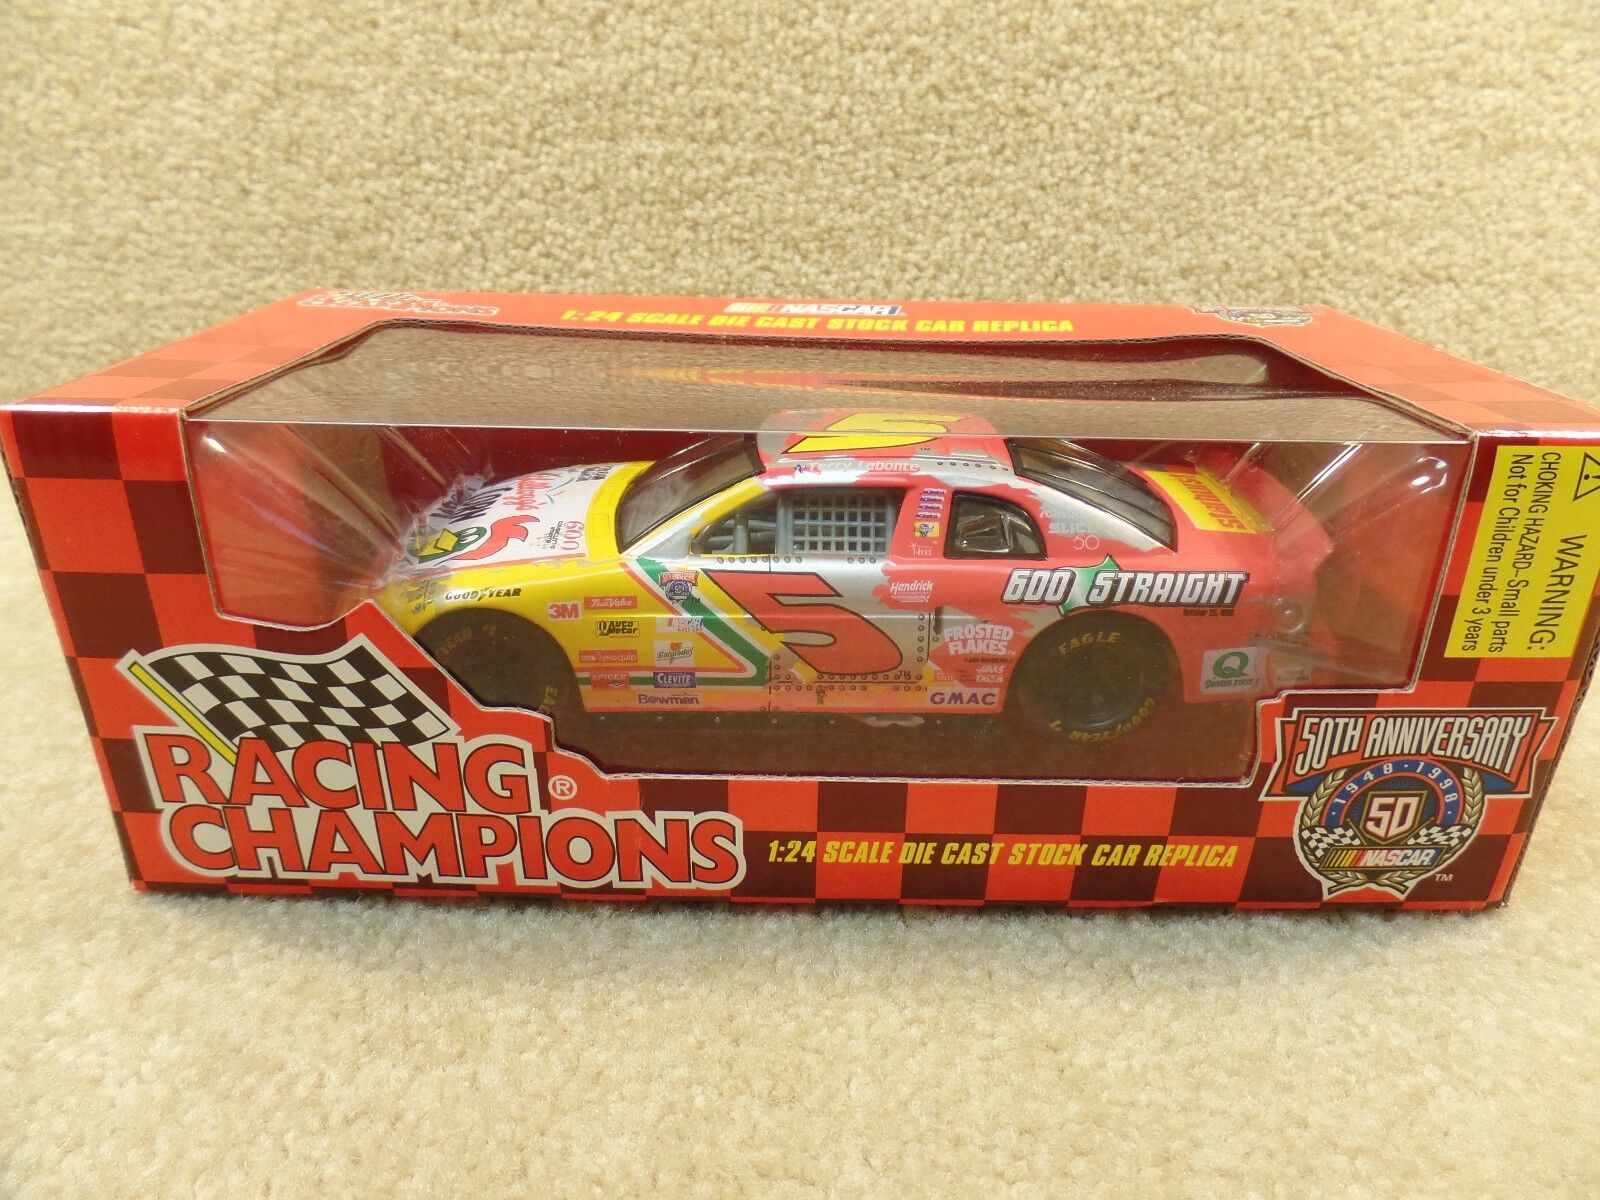 New 1998 Racing Champions 1 24 Diecast NASCAR Terry Labonte 600 Starts Kellogg's